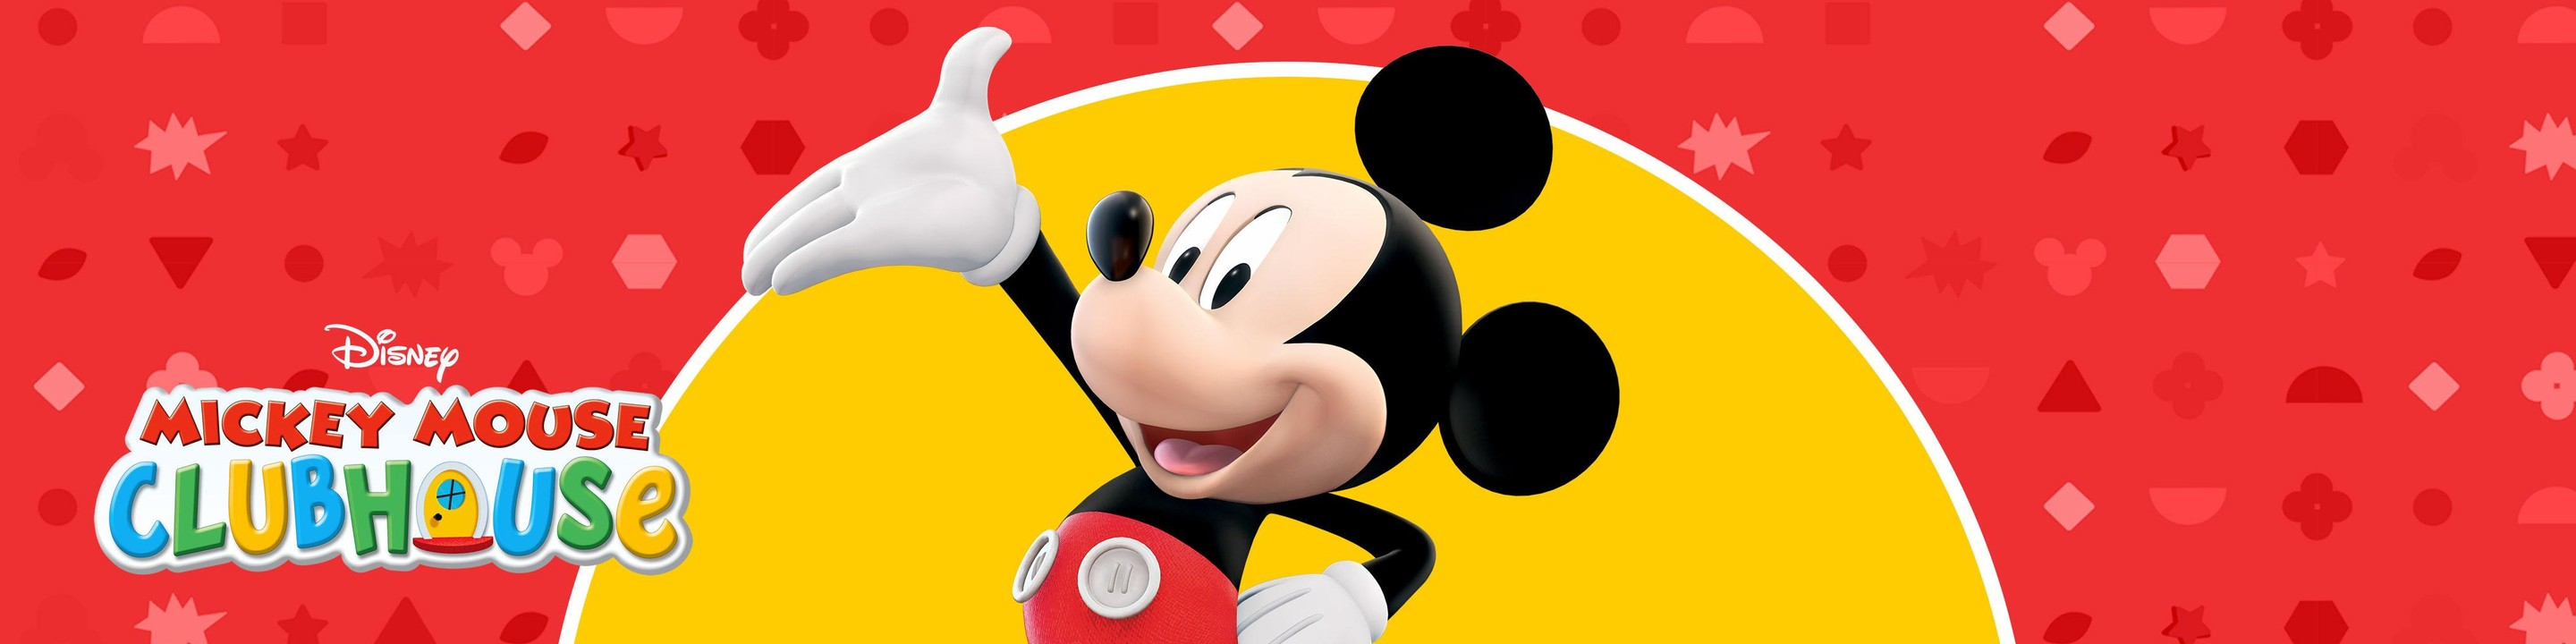 mickey mouse video download